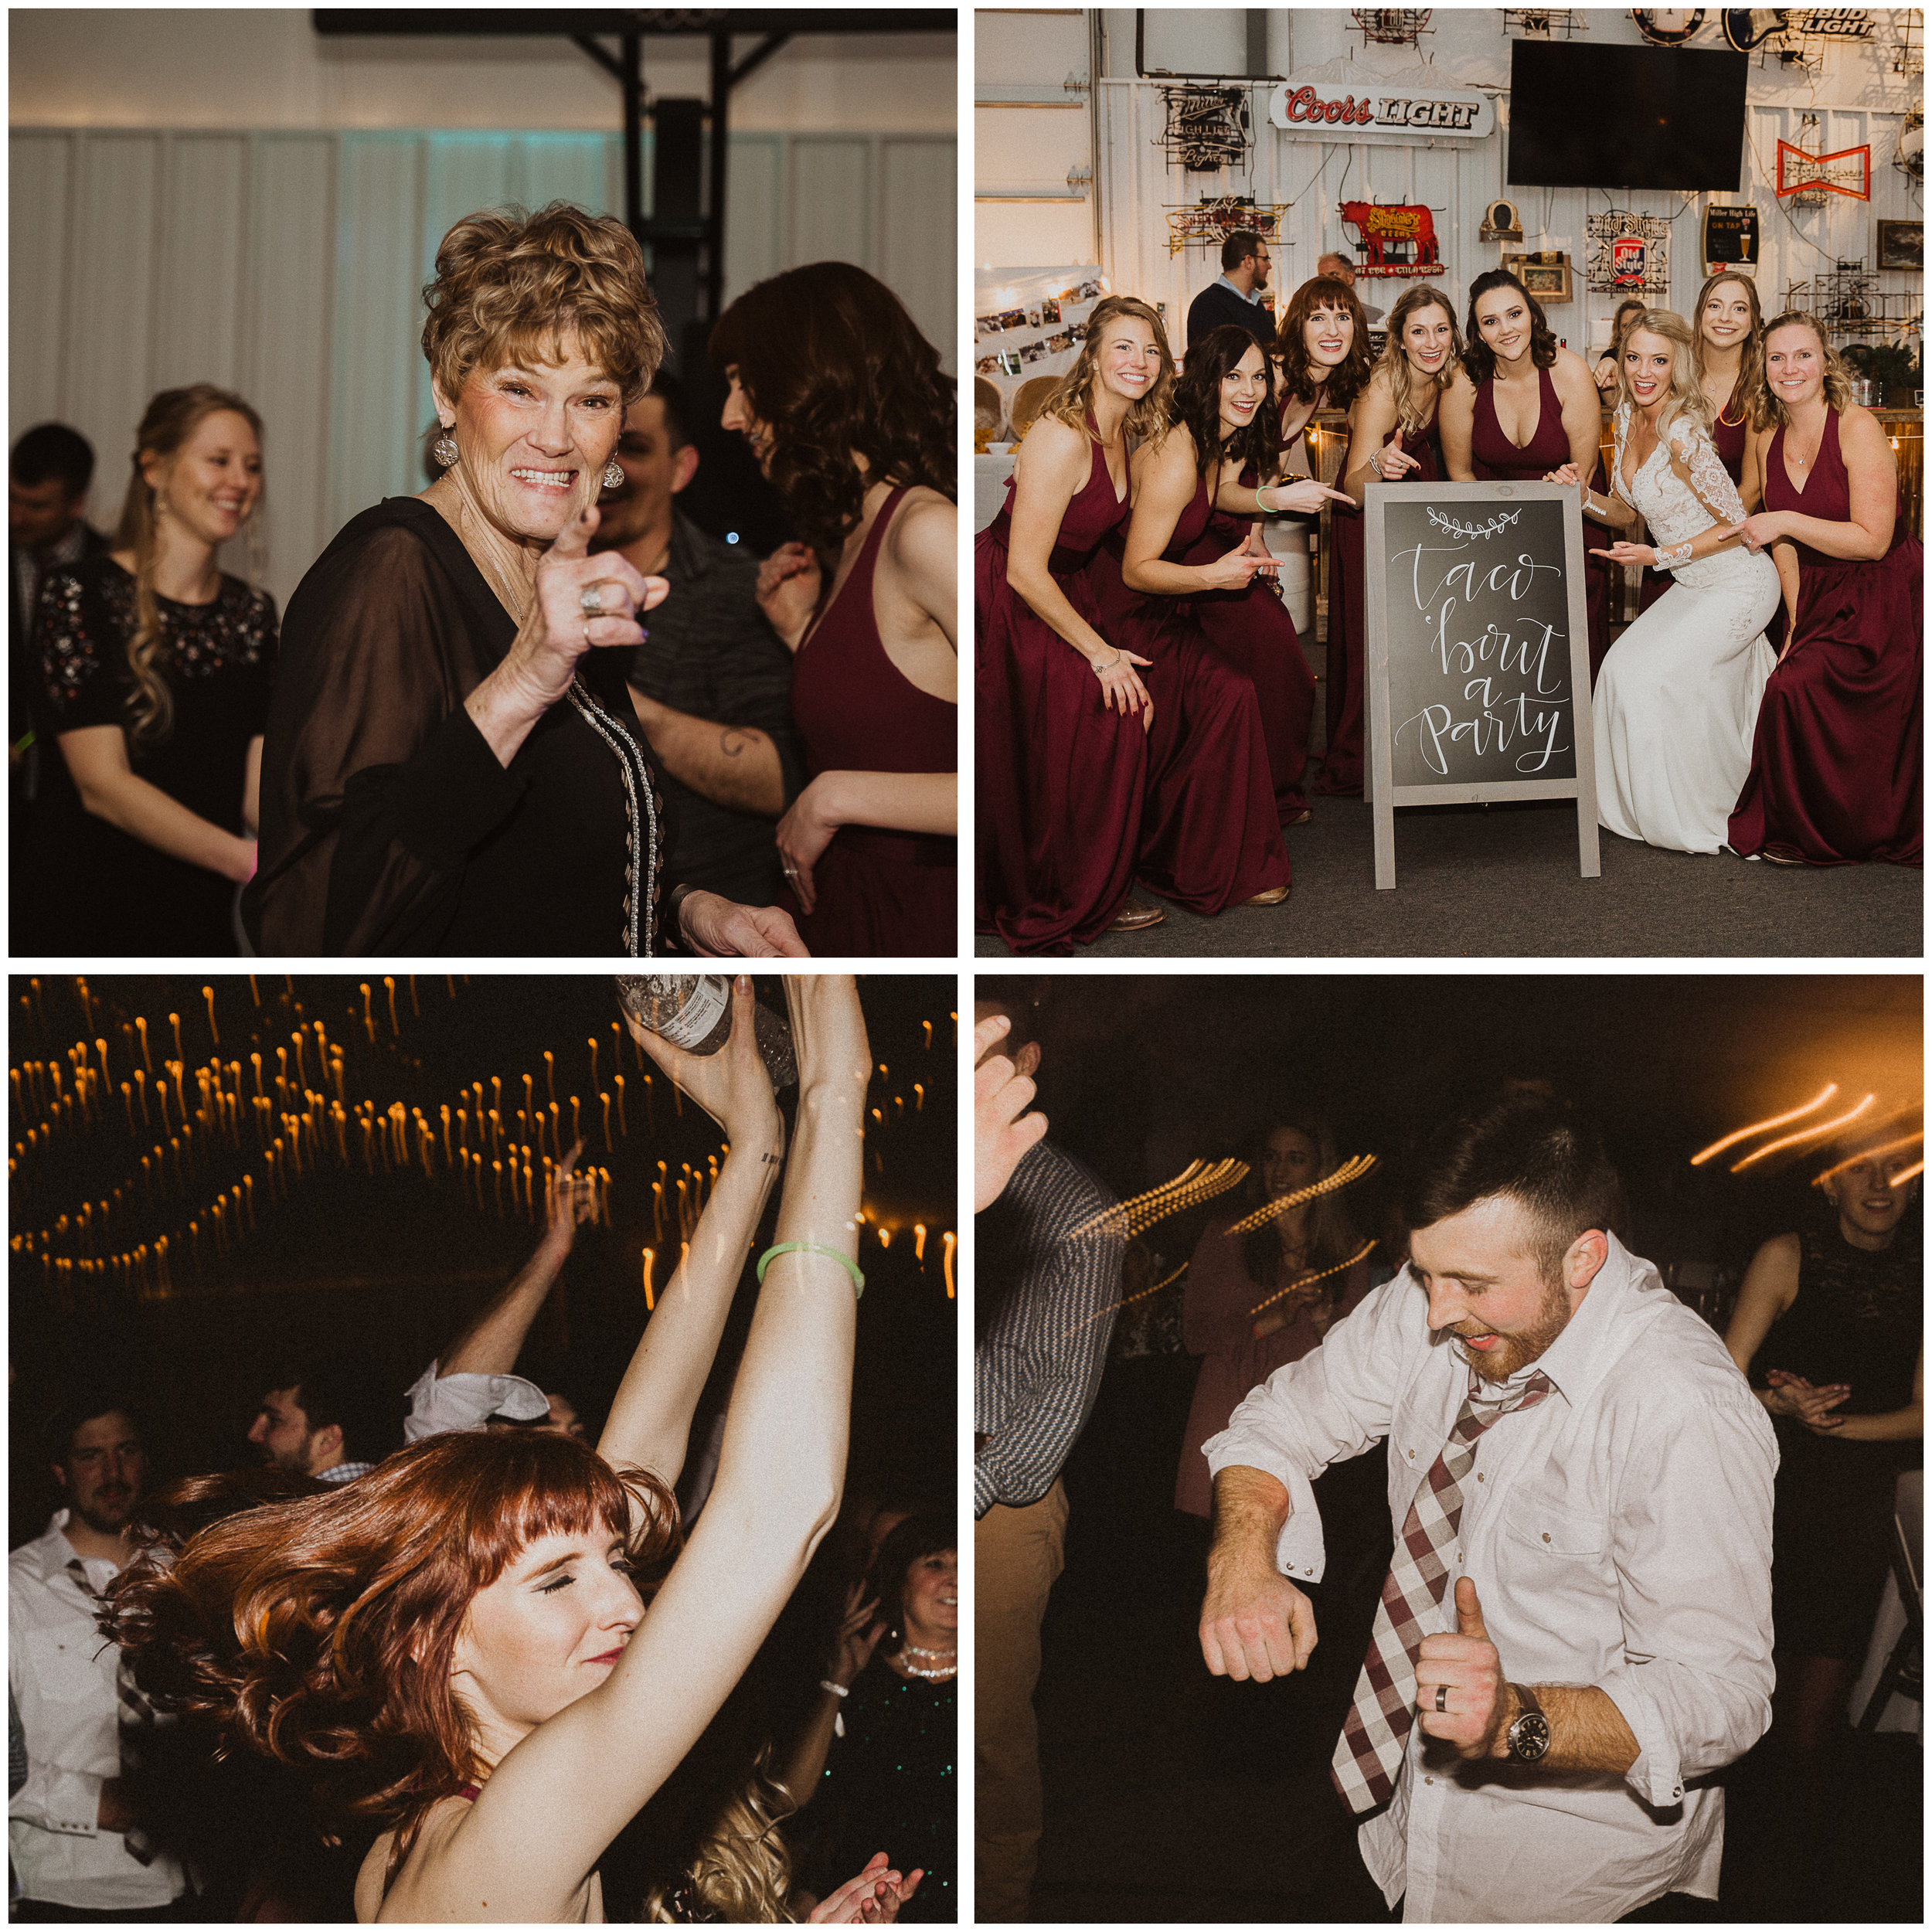 barn-wedding-dance-party.jpg